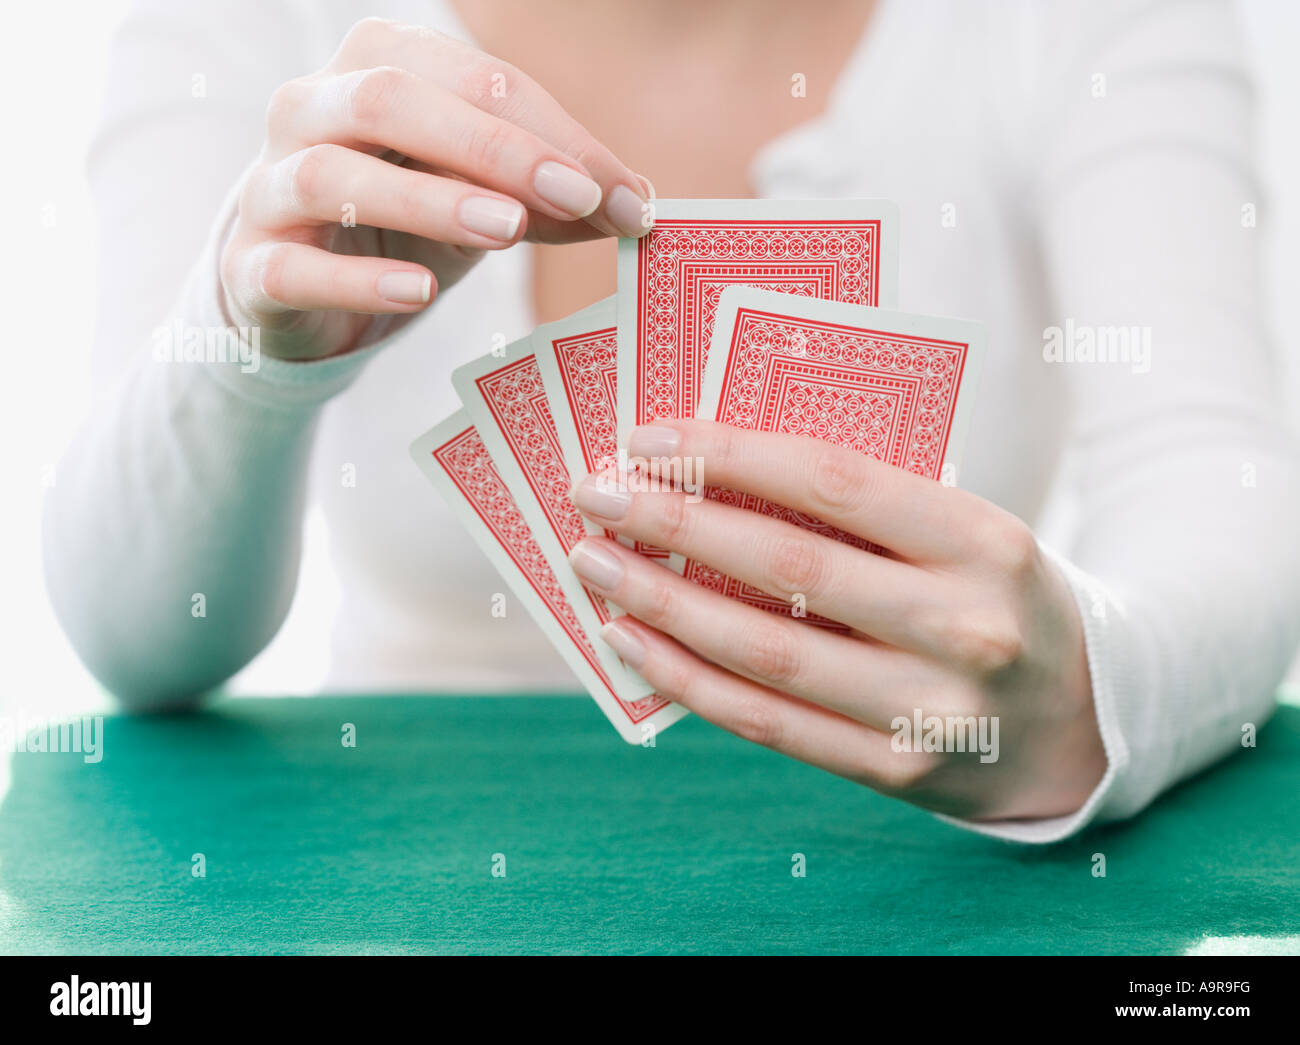 Woman playing cards - Stock Image